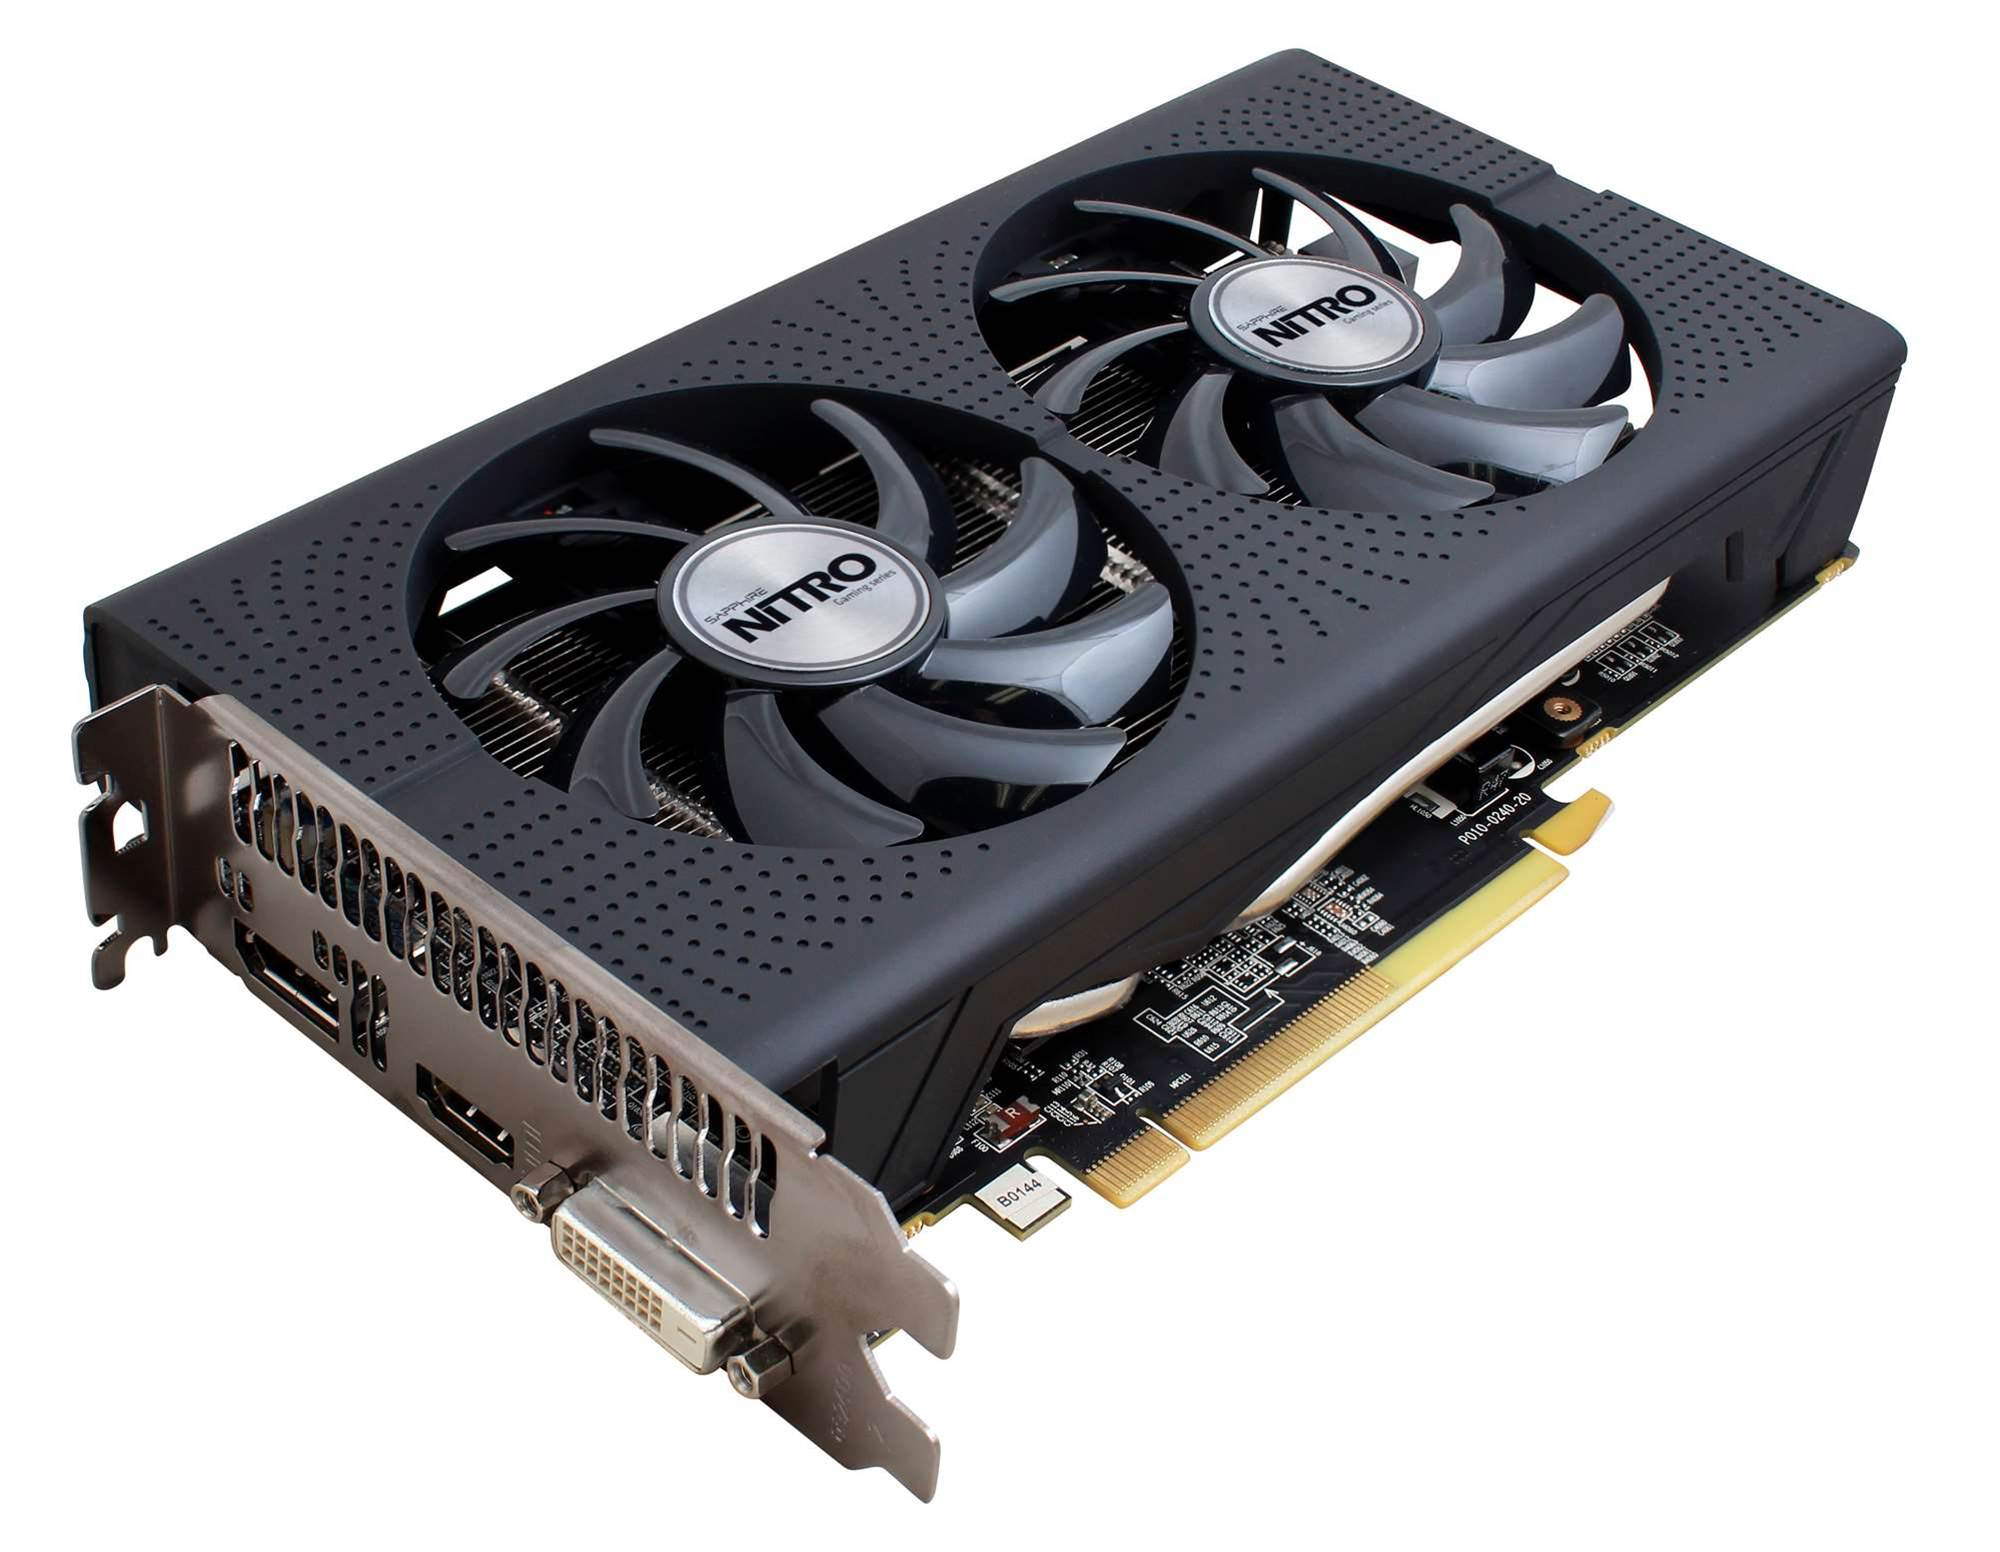 Sapphire reveals Nitro and vanilla RX 460 video cards